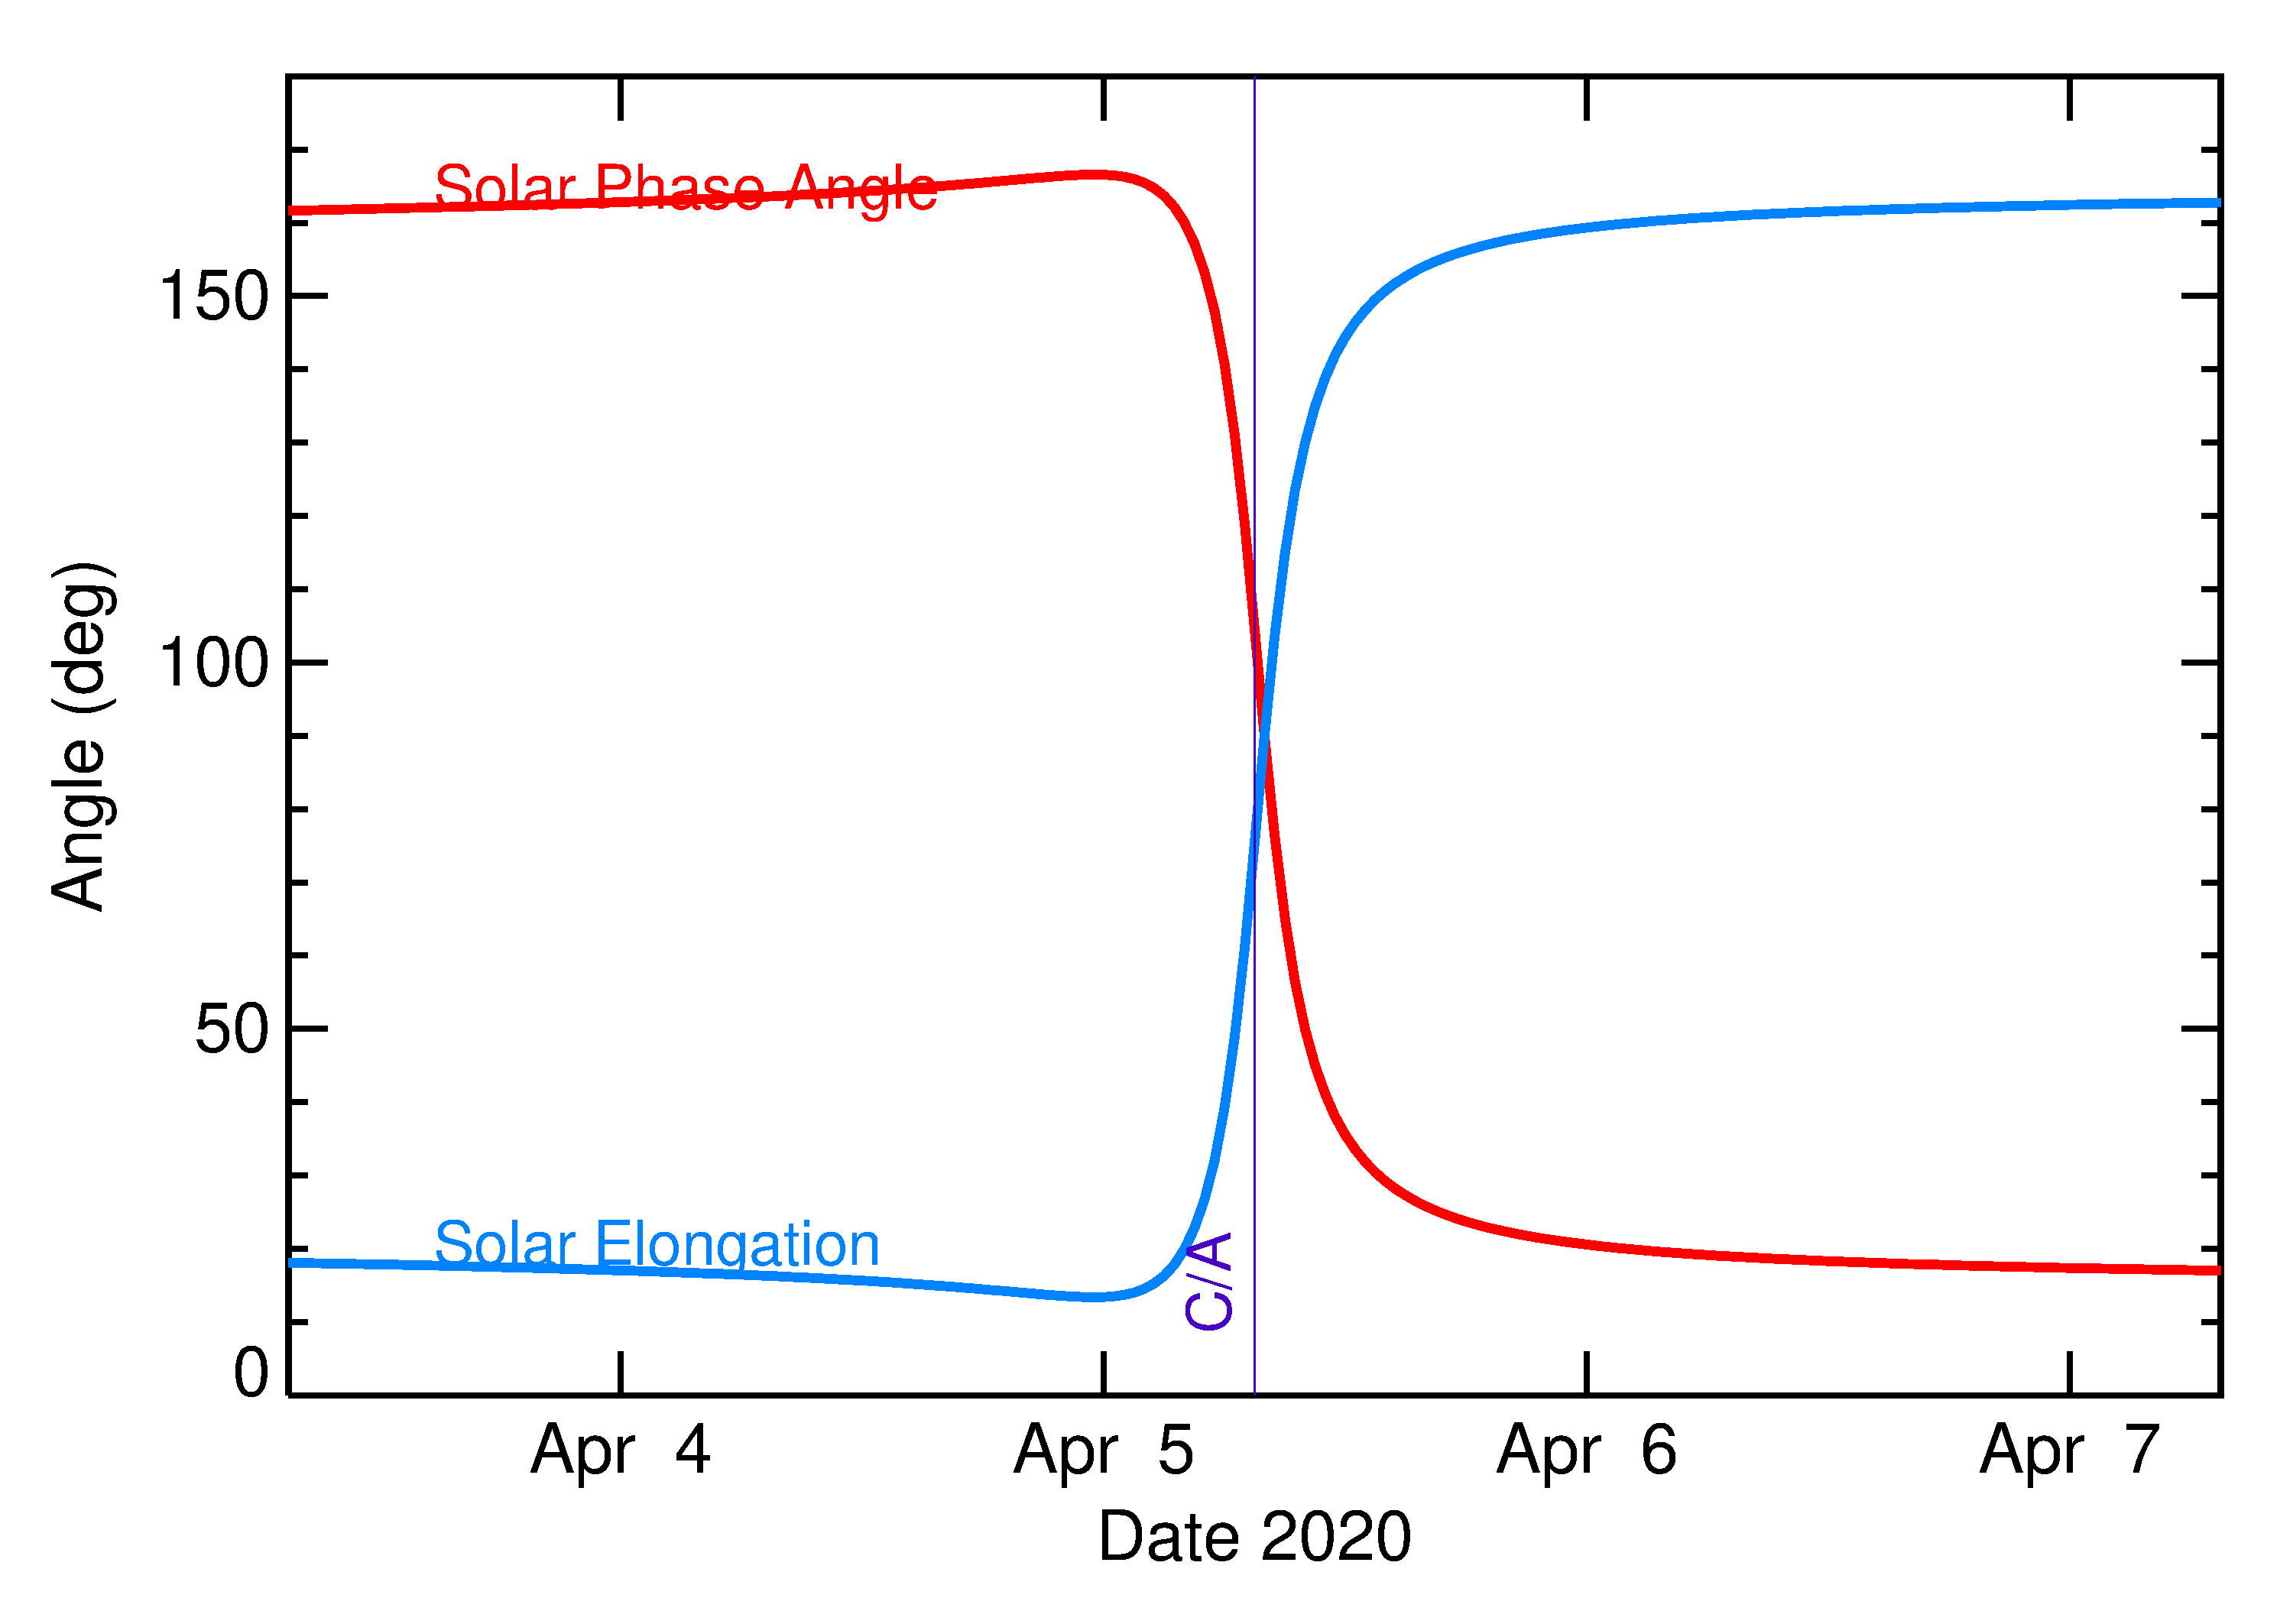 Solar Elongation and Solar Phase Angle of 2020 GY1 in the days around closest approach